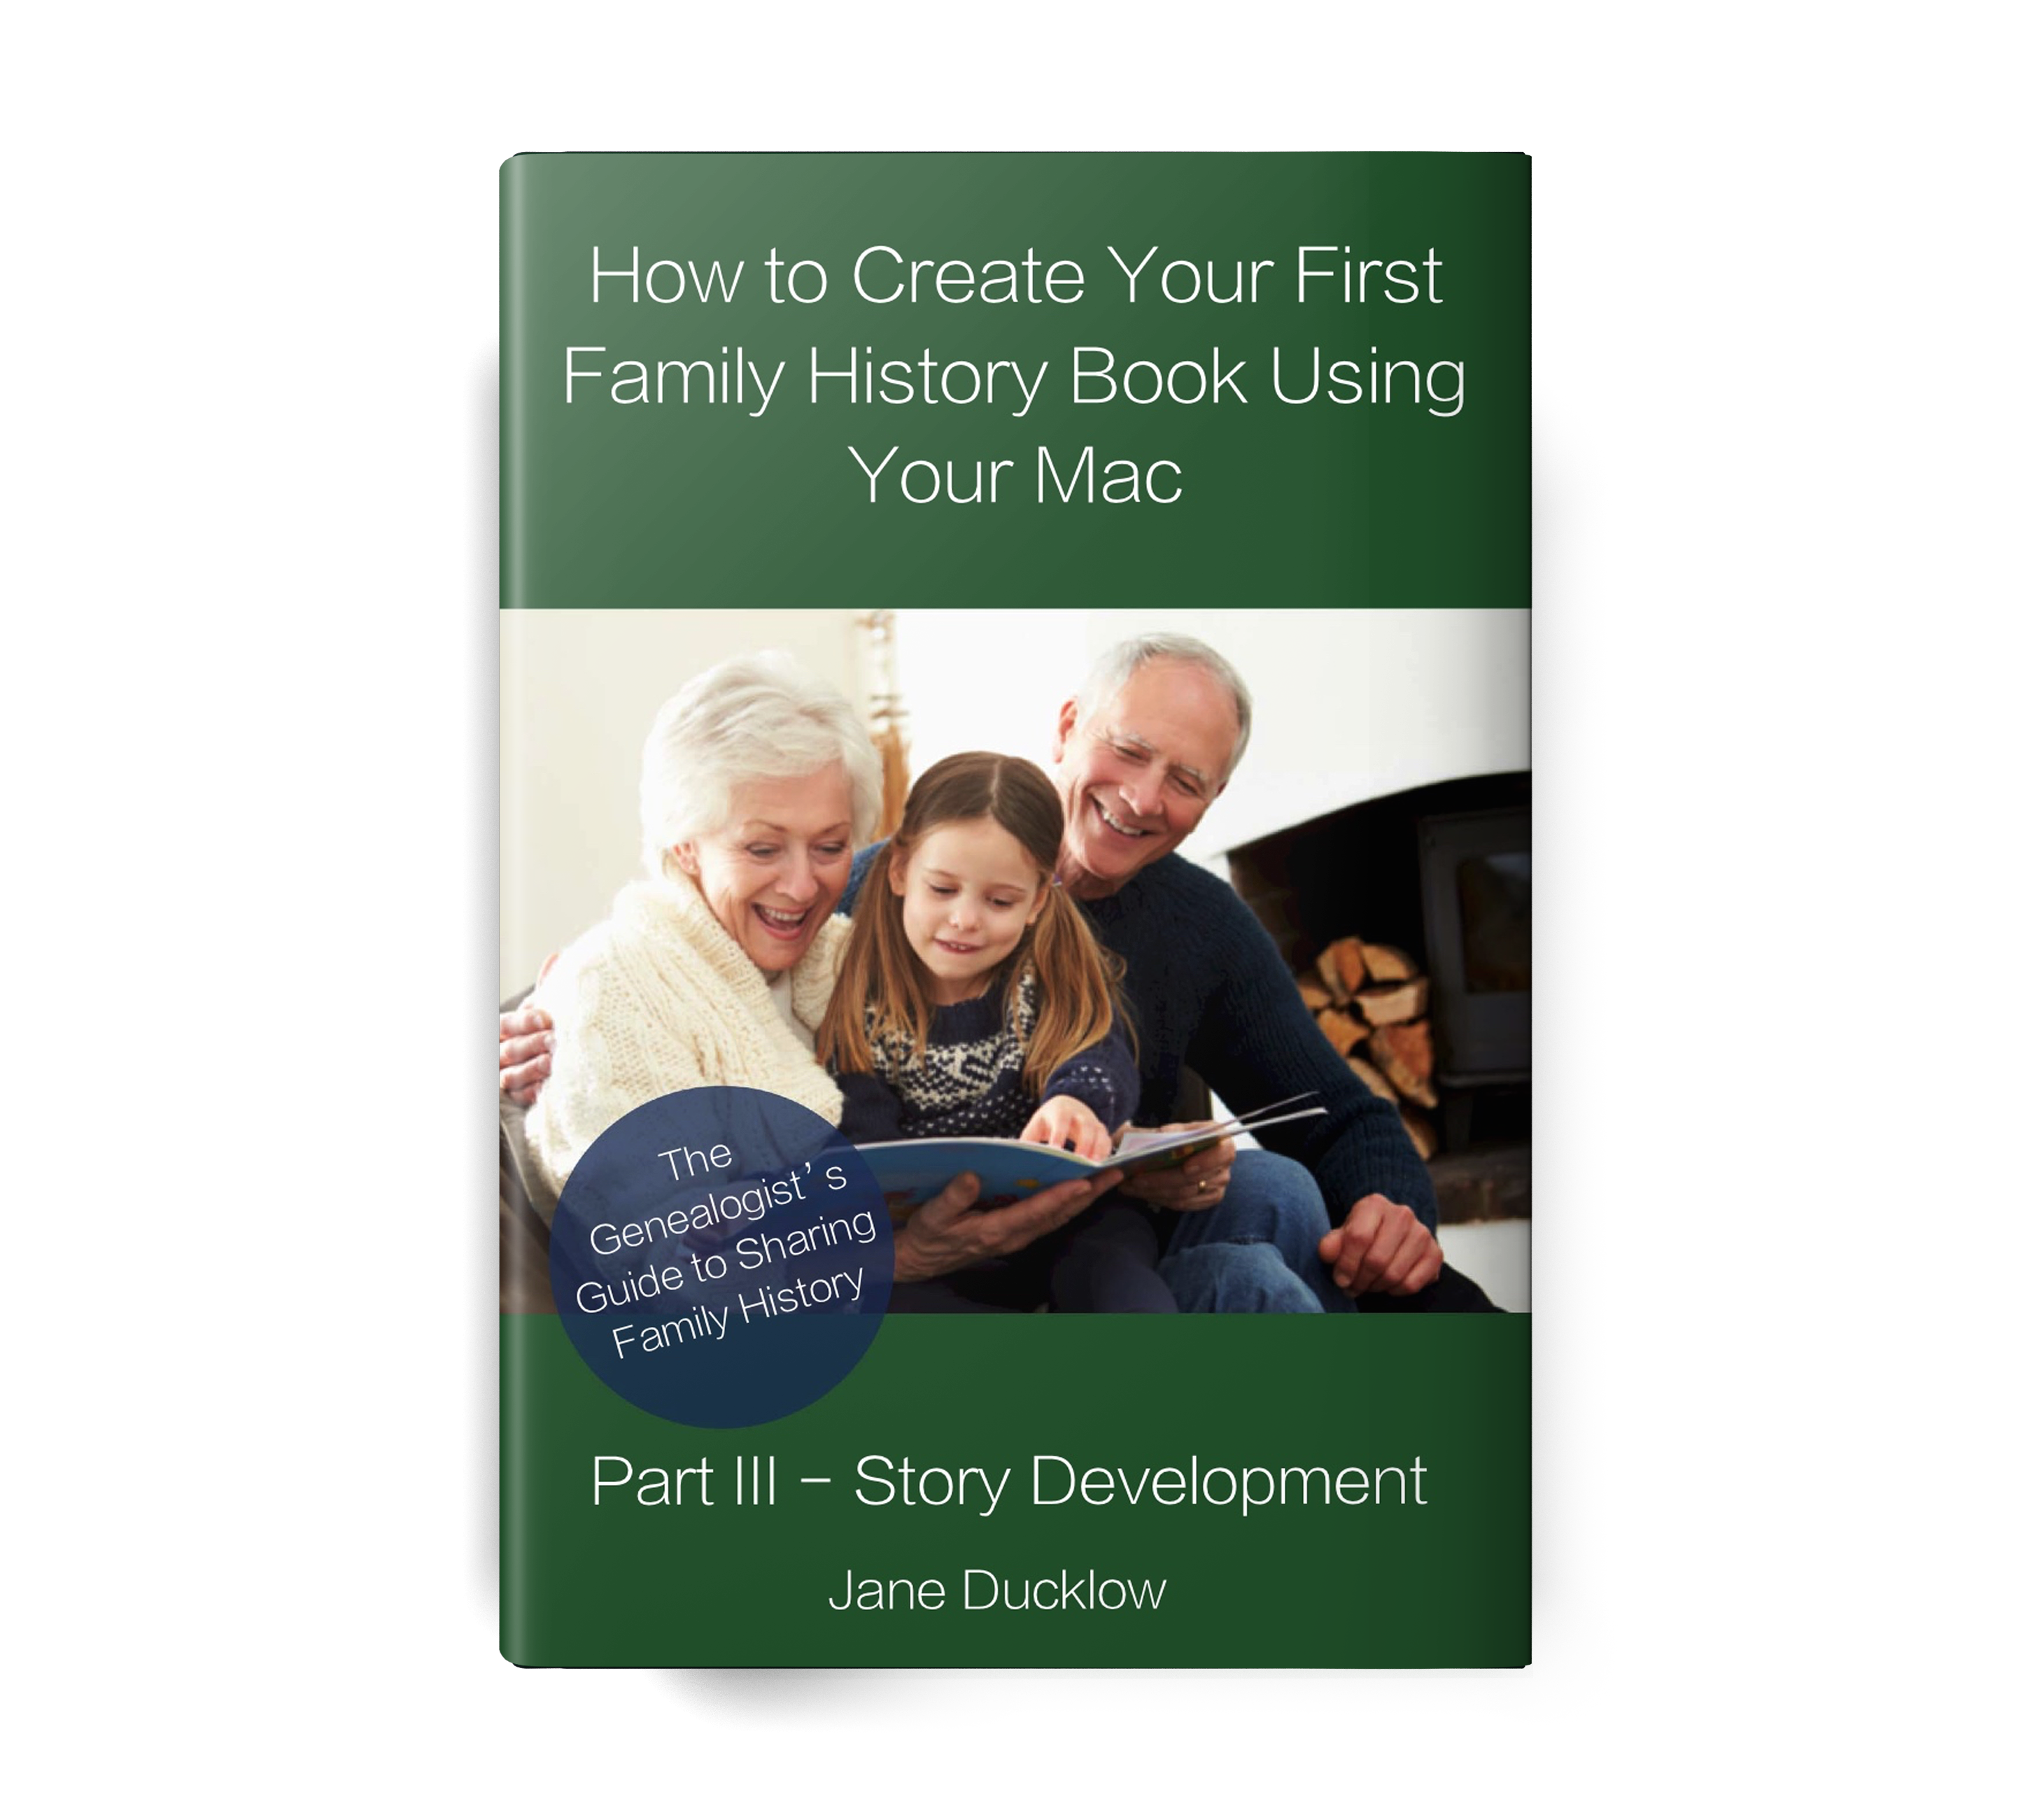 how to create your first family history book using your mac part